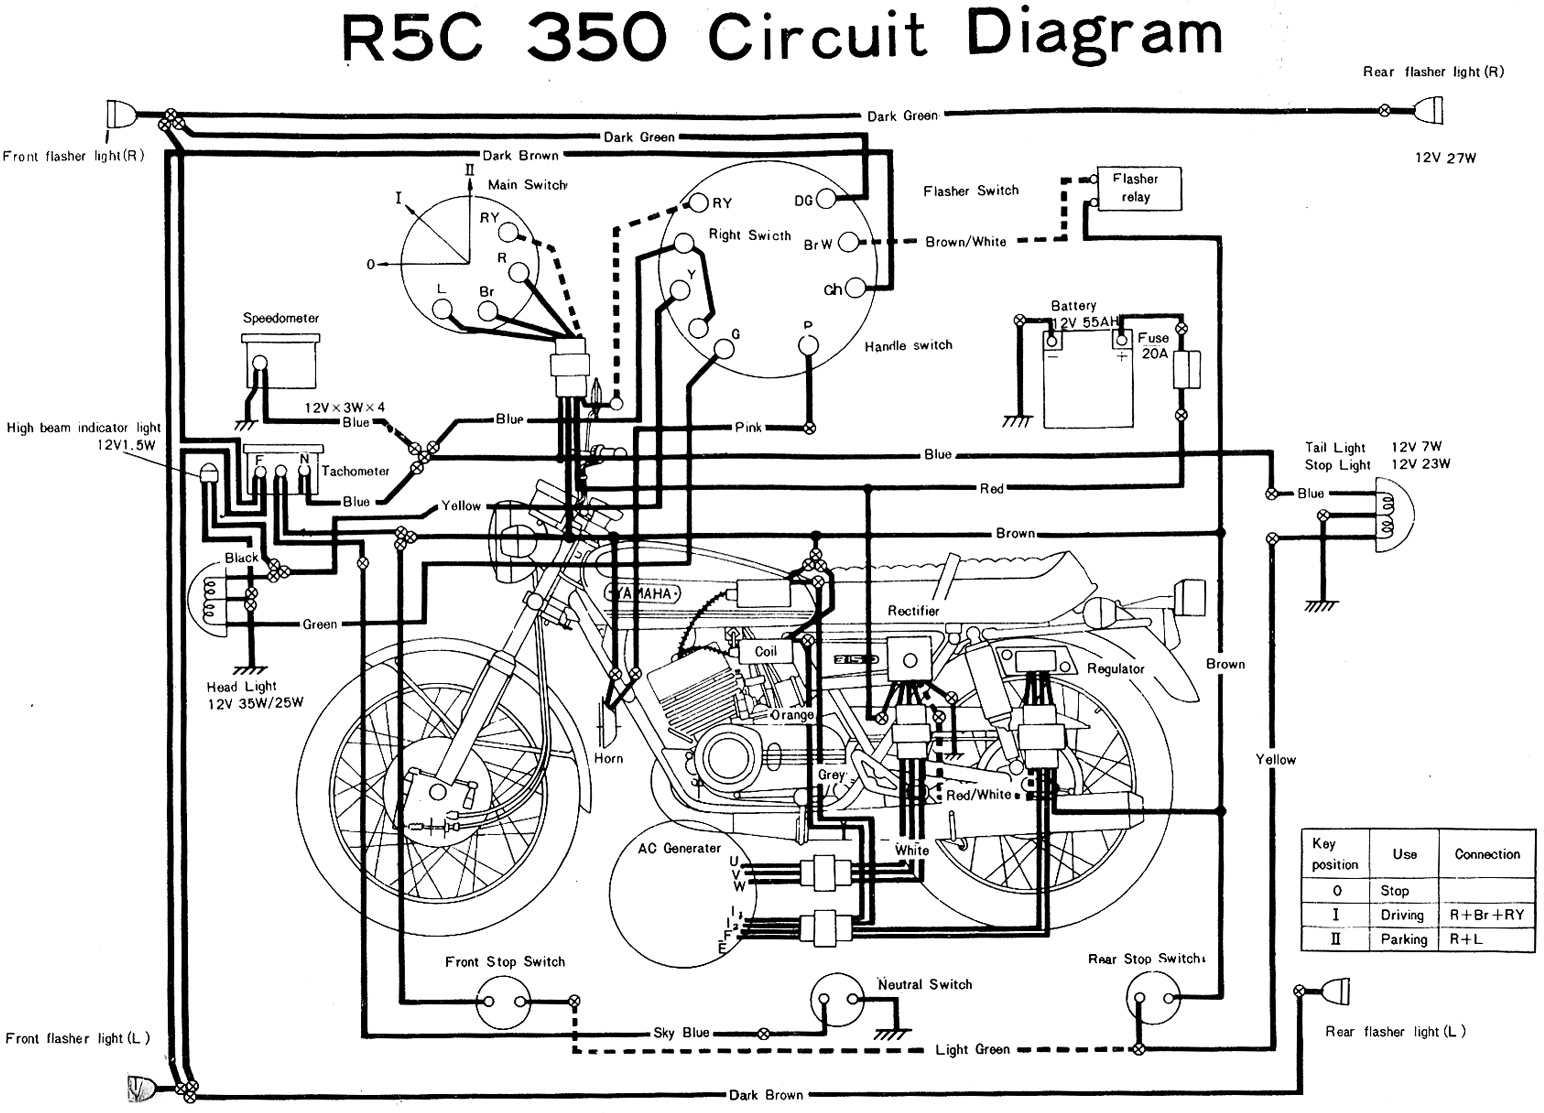 Yamaha-RD350-R5C-Wiring-Diagram Yamaha R Wiring Diagram Ignition on smart car, harley electronic, gm hei,